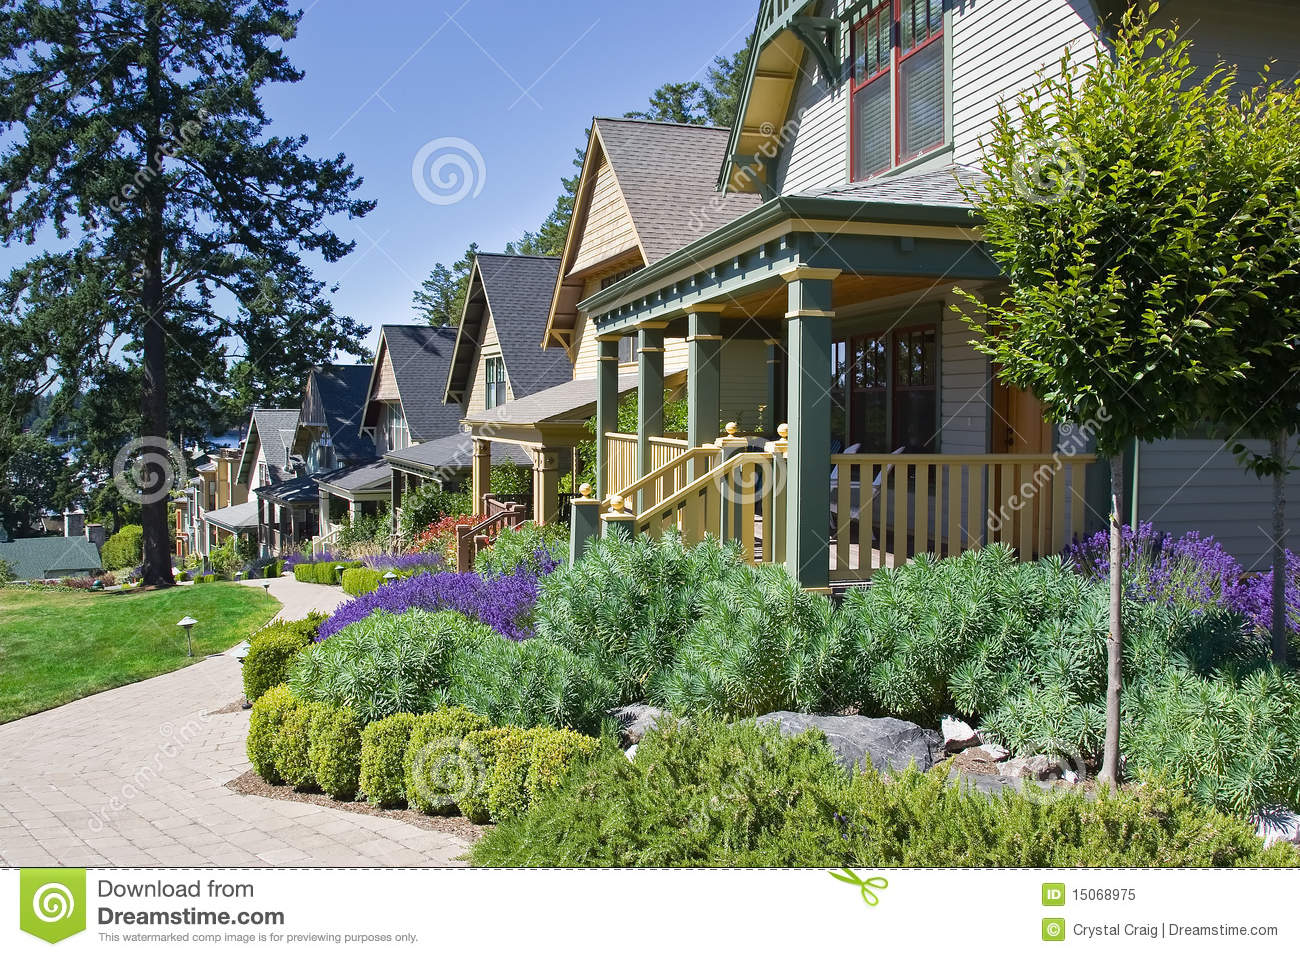 Craftsman style cottage homes stock image image 15068975 for Cottage style house